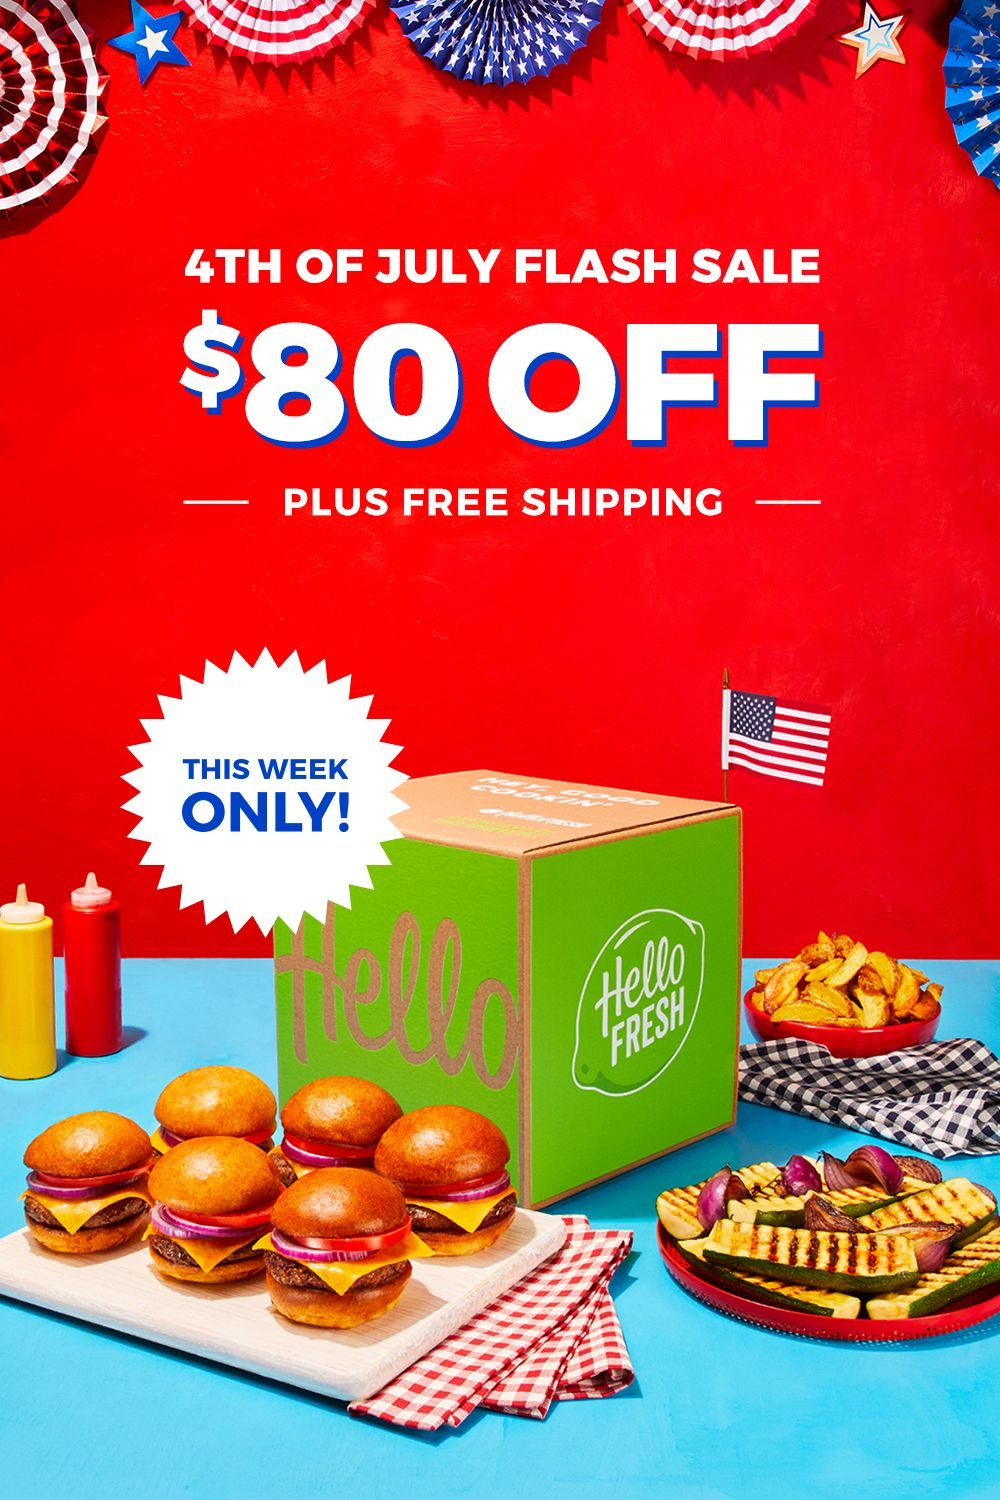 This 4th of July, have the summers best dishes come to you with 8 free meals plus free shipping! images